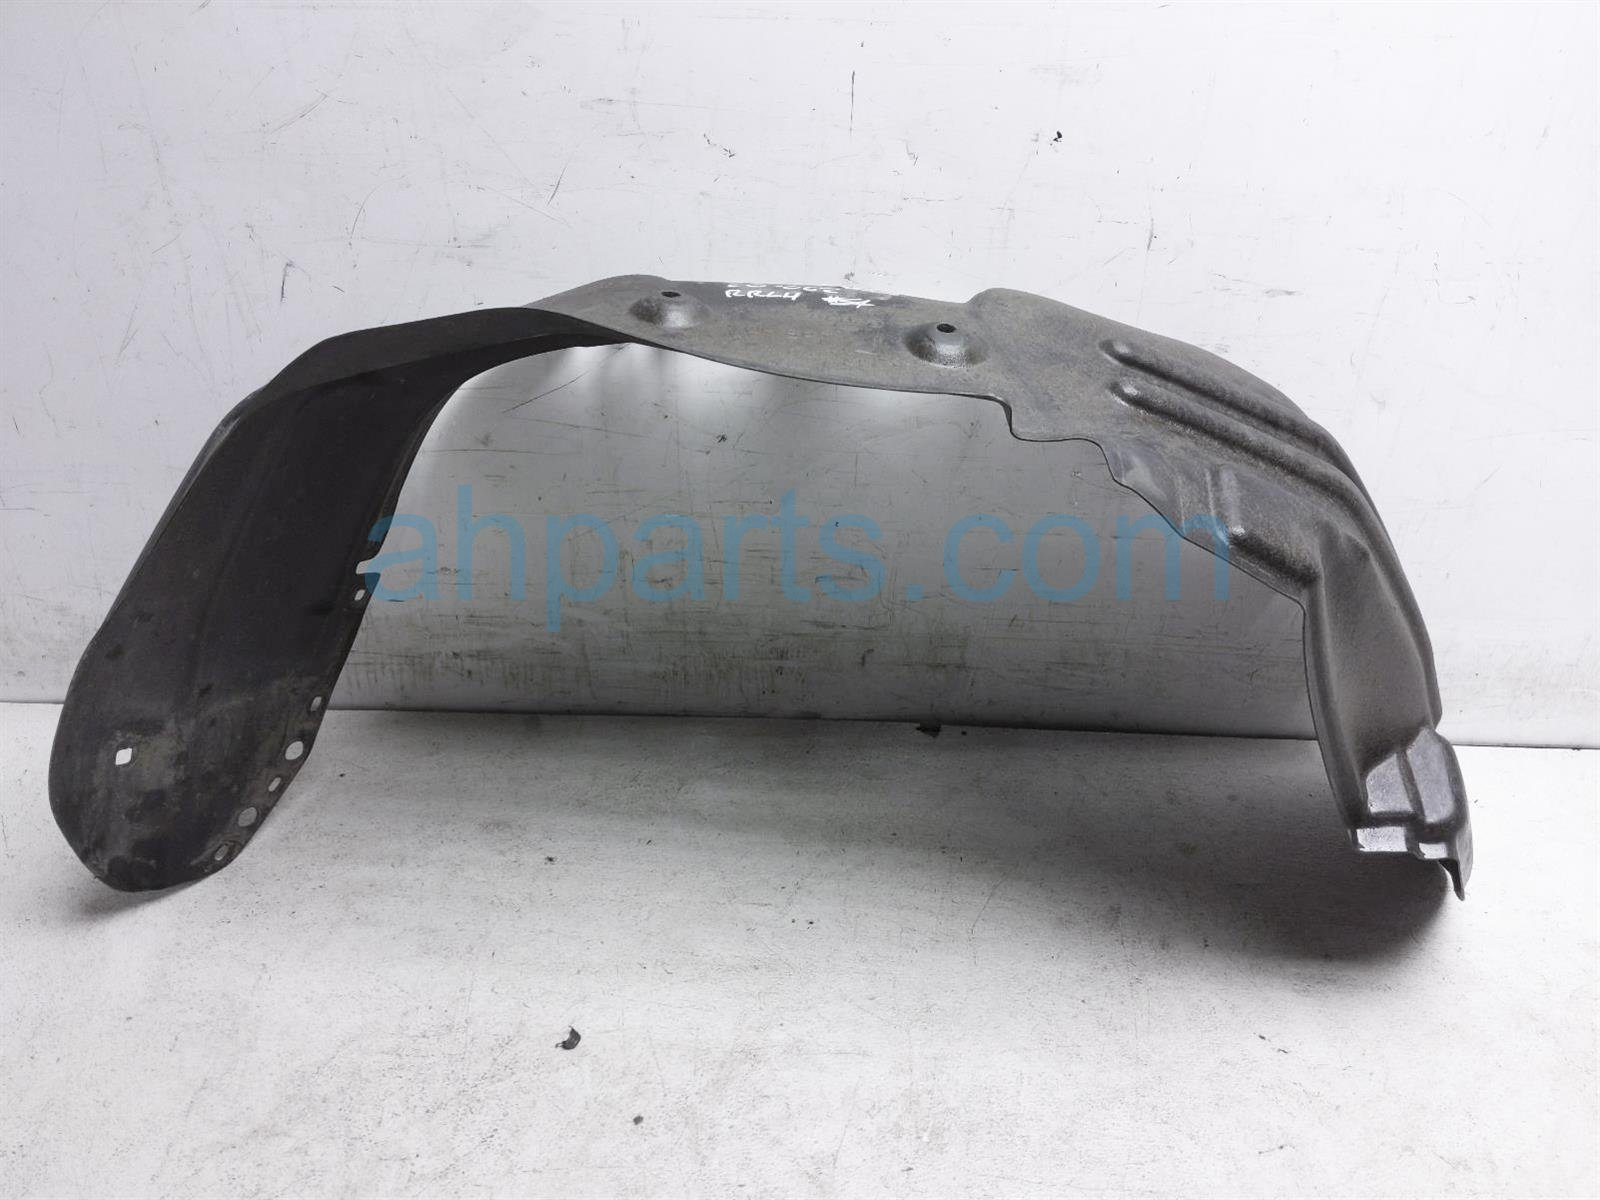 2017 Toyota Tacoma Rear Driver Inner Fender Liner 65638 04070 Replacement